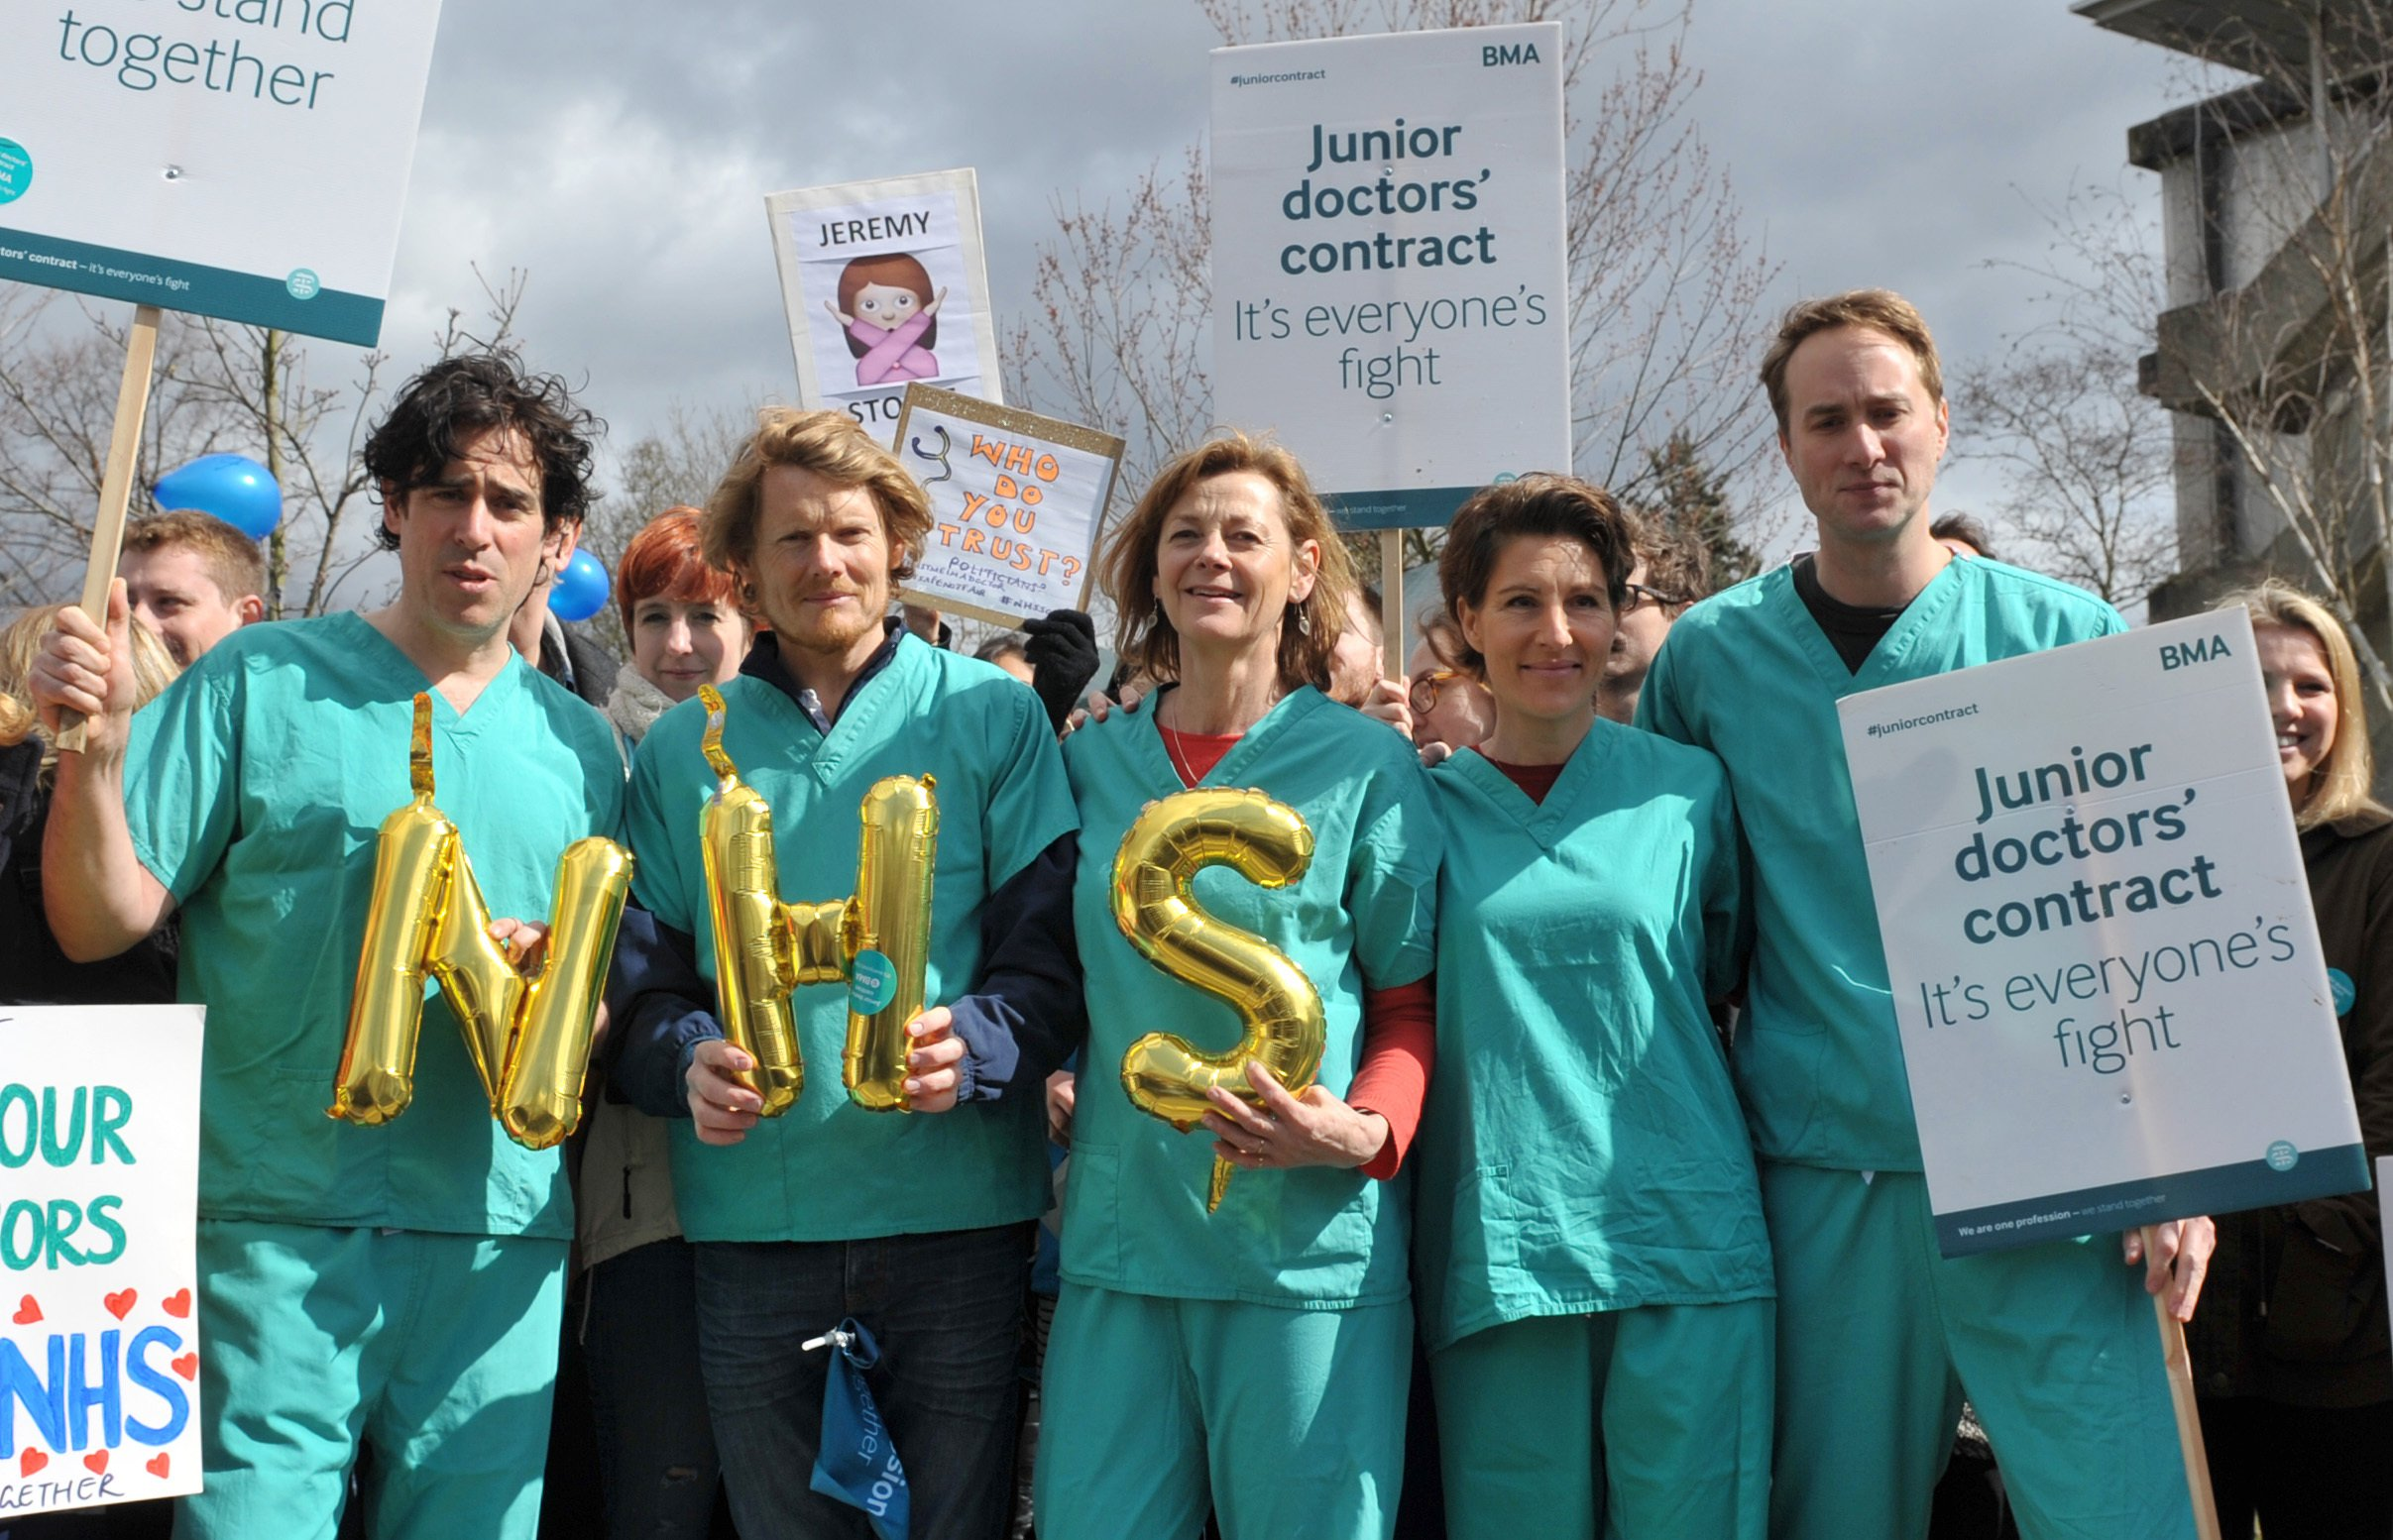 Green Wing cast (from the left) Stephen Mangan, Julian Rhind-Tutt, Pippa Haywood, Tamsin Greig and Oliver Chris join a picket line outside Northwick Hospital in Middlesex, as junior doctors take to picket lines once more in their ongoing dispute with the Government. PRESS ASSOCIATION Photo. Picture date: Wednesday April 6, 2016. The walkout, which will still see junior doctors provide emergency care cover, is the fourth round of industrial action taken by the British Medical Association (BMA) in the row over a new contract for junior doctors. See PA story HEALTH Doctors. Photo credit should read: Nick Ansell/PA Wire